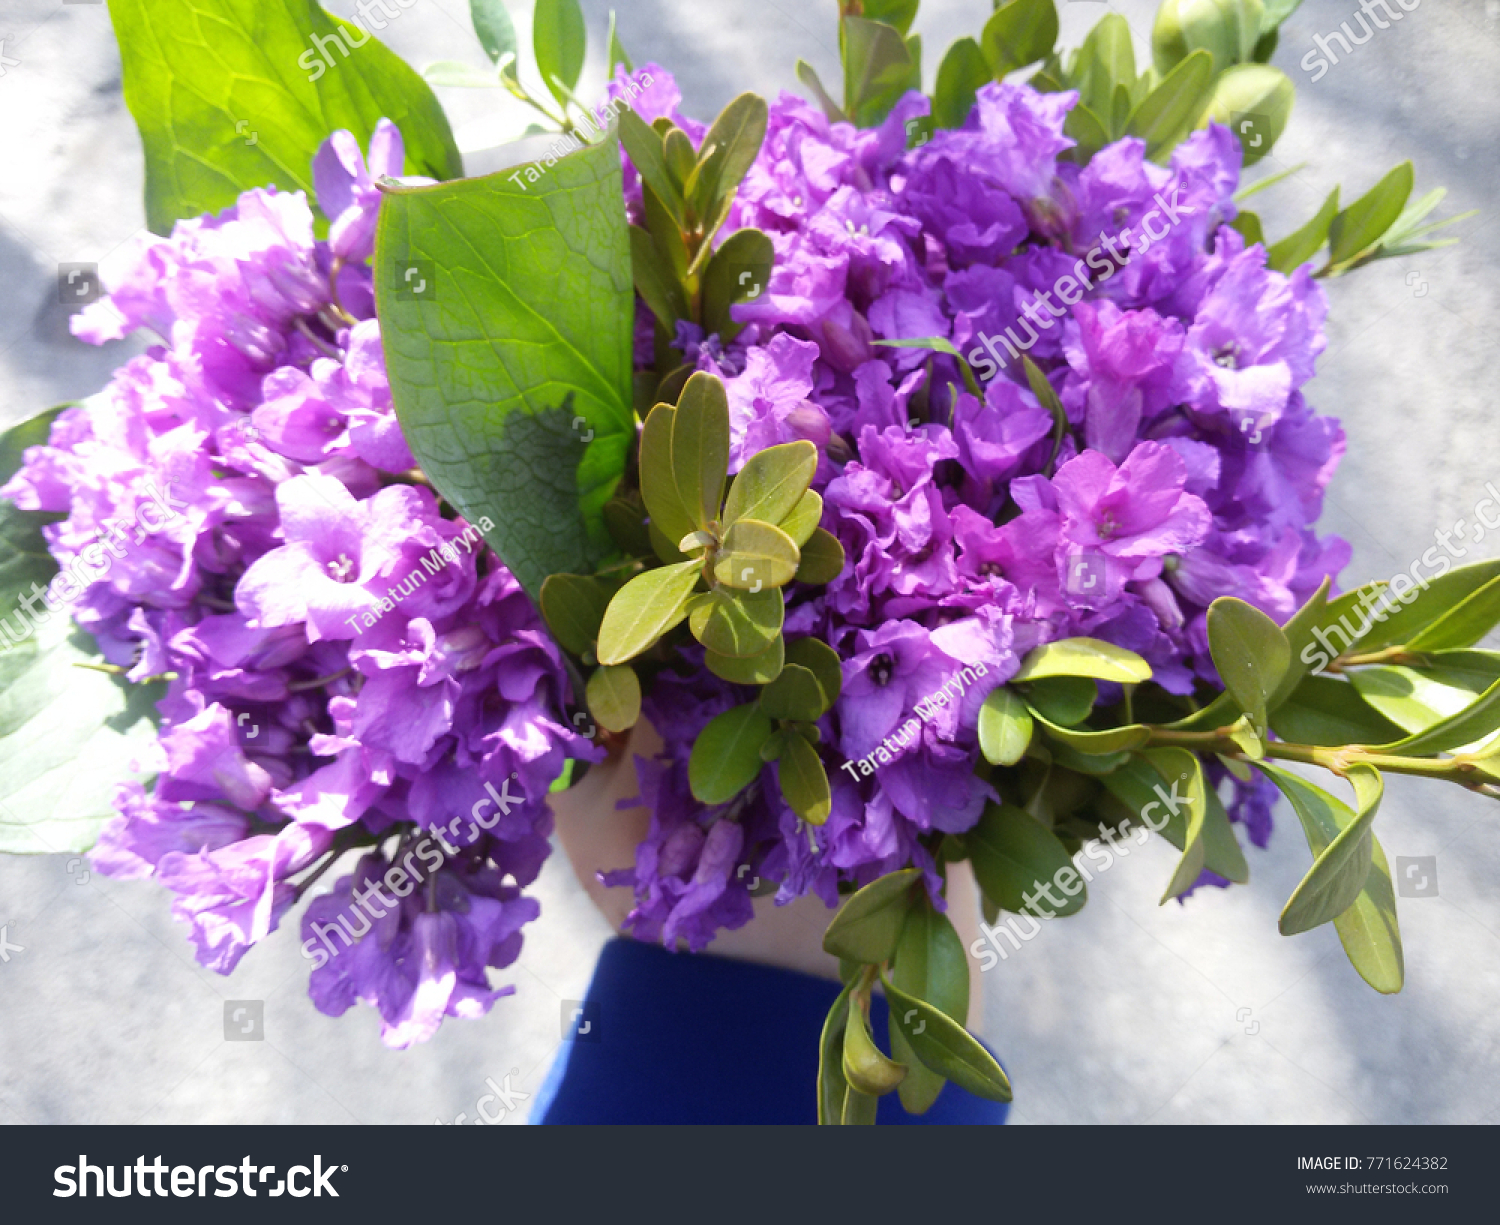 Lovely bouquet as a gift for a beautiful girl ez canvas id 771624382 izmirmasajfo